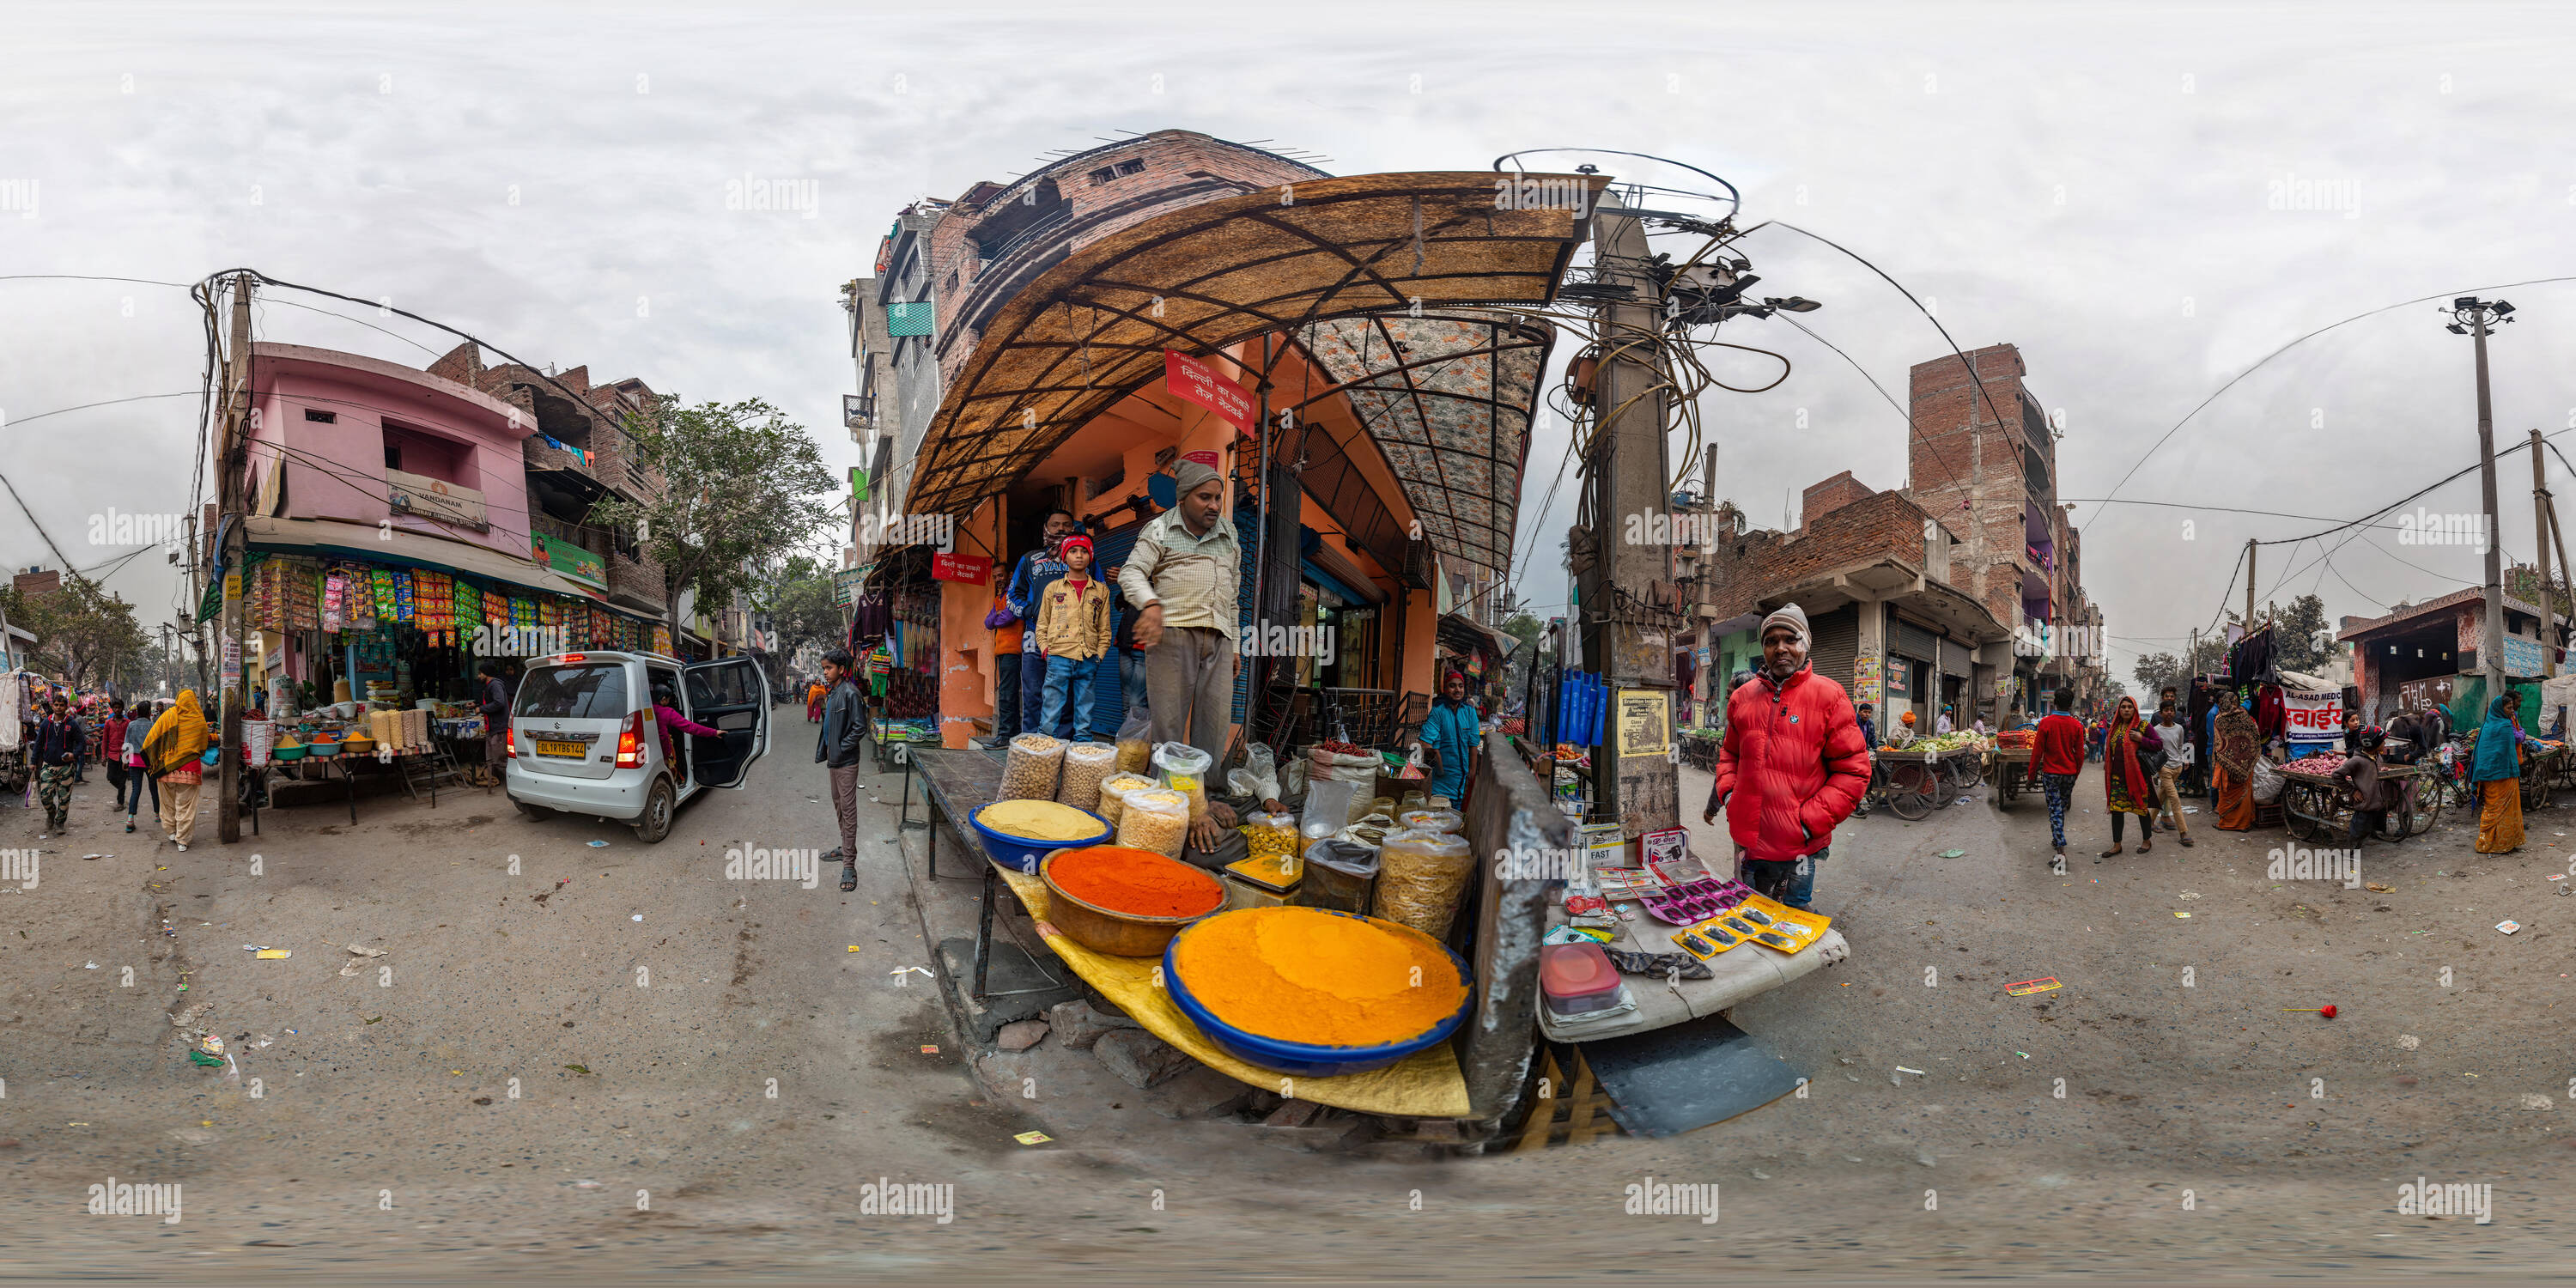 360 degree panoramic view of 360 View showing market street with a corner spice shop in Sabji Mandi Road in slum resettlement colony of JJ Colony Madanpur Khadar, New Delhi, India